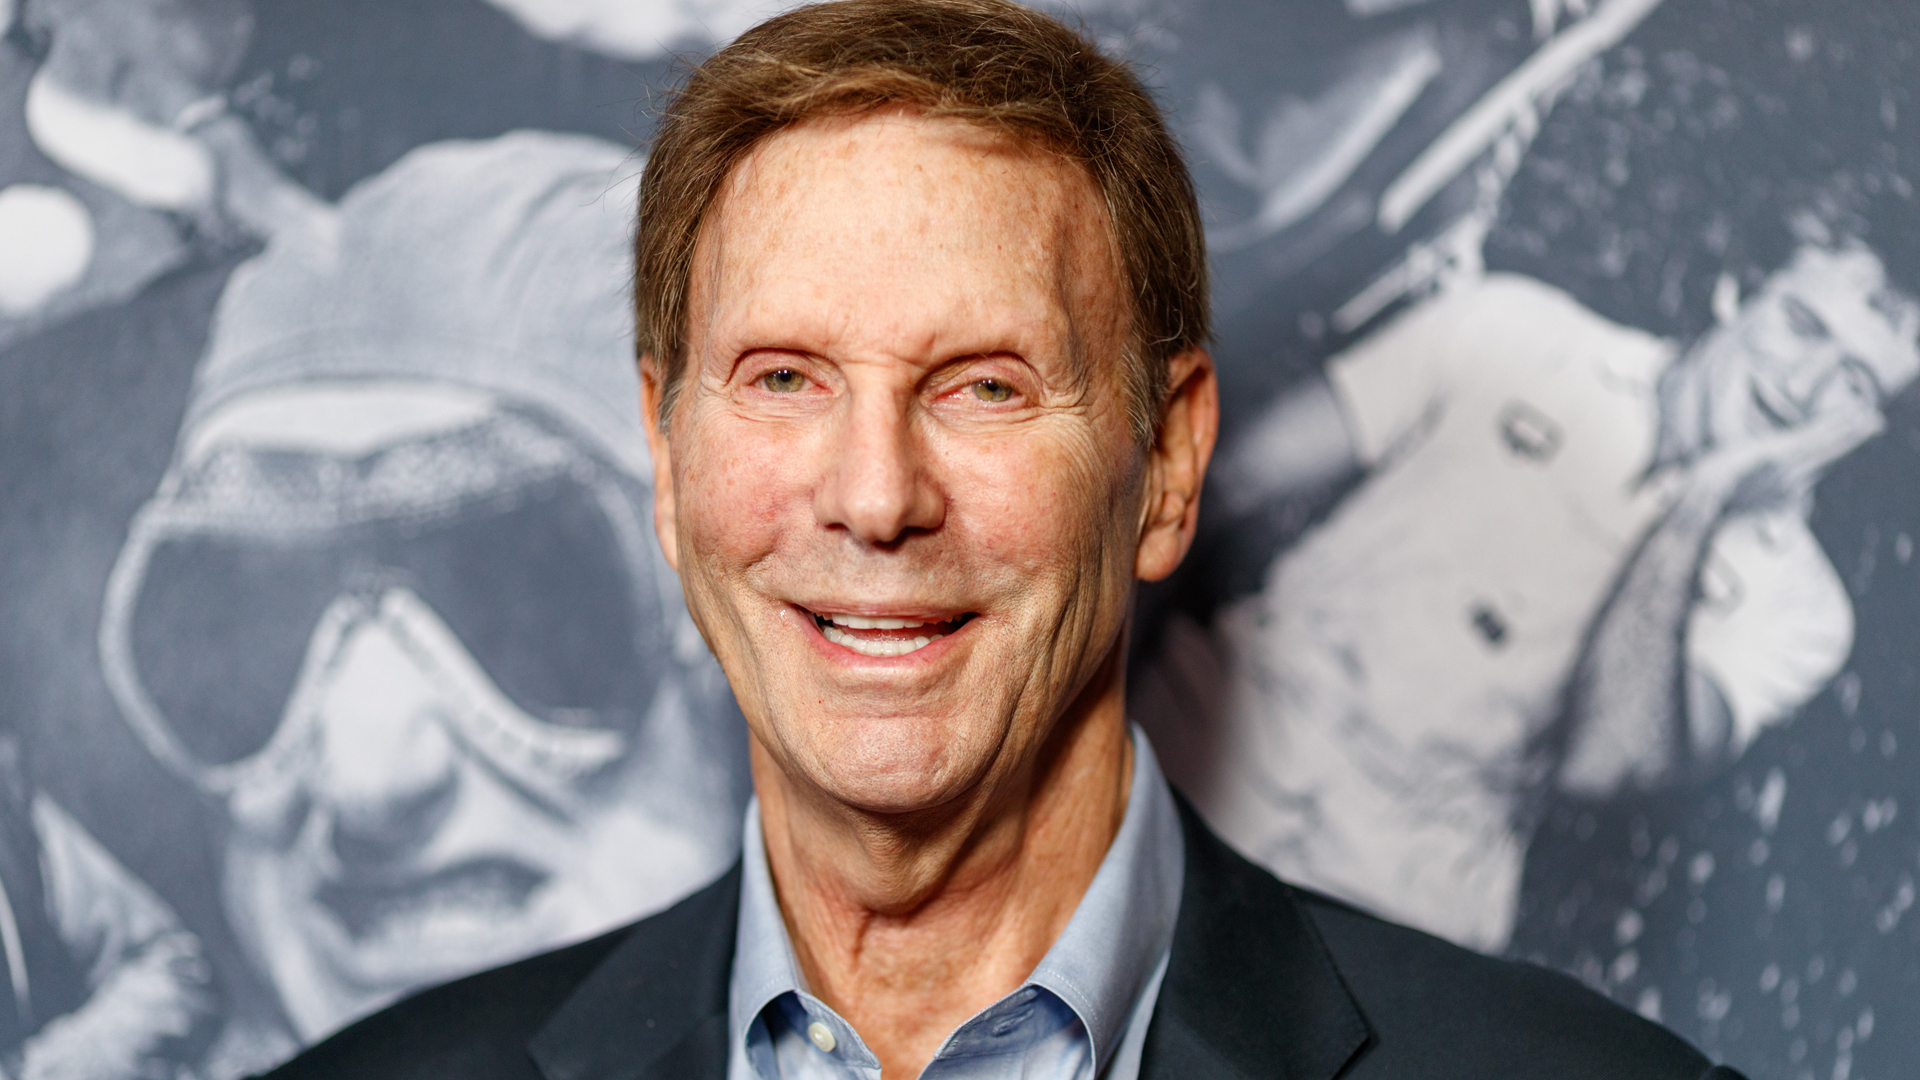 Bob Einstein arrives to the Premiere Of HBO's 'Robin Williams: Come Inside My Mind' at TCL Chinese 6 Theatres on June 27, 2018 in Hollywood. (Credit: Christopher Polk/Getty Images)